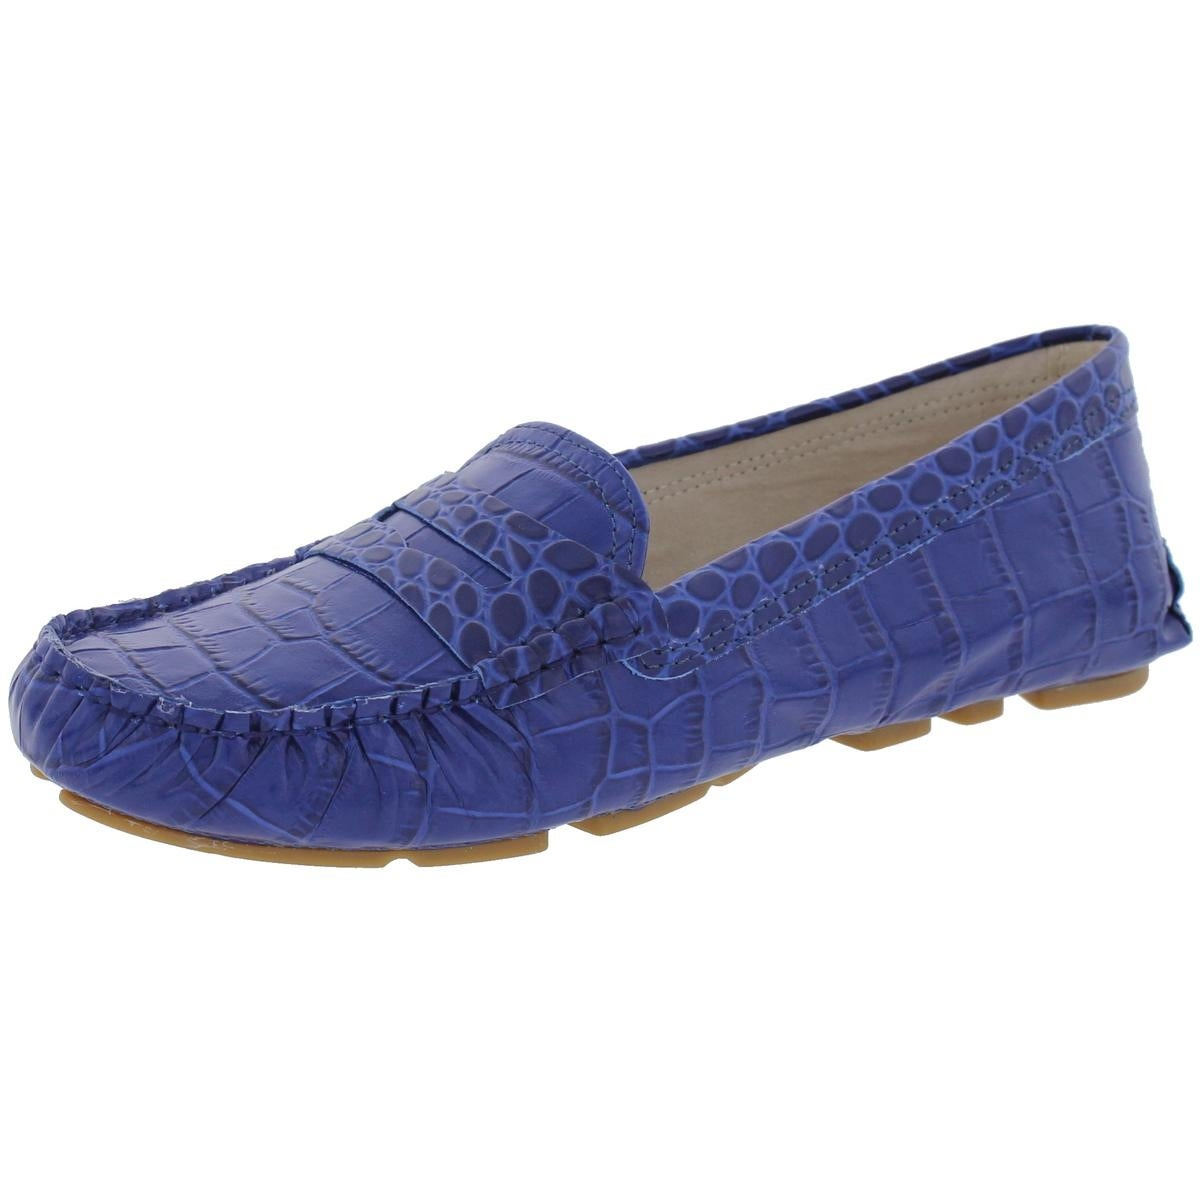 d826802d9f4 Shop Sam Edelman Womens Filly Penny Loafers Contrast Stitch - Free Shipping  On Orders Over  45 - Overstock - 21008434